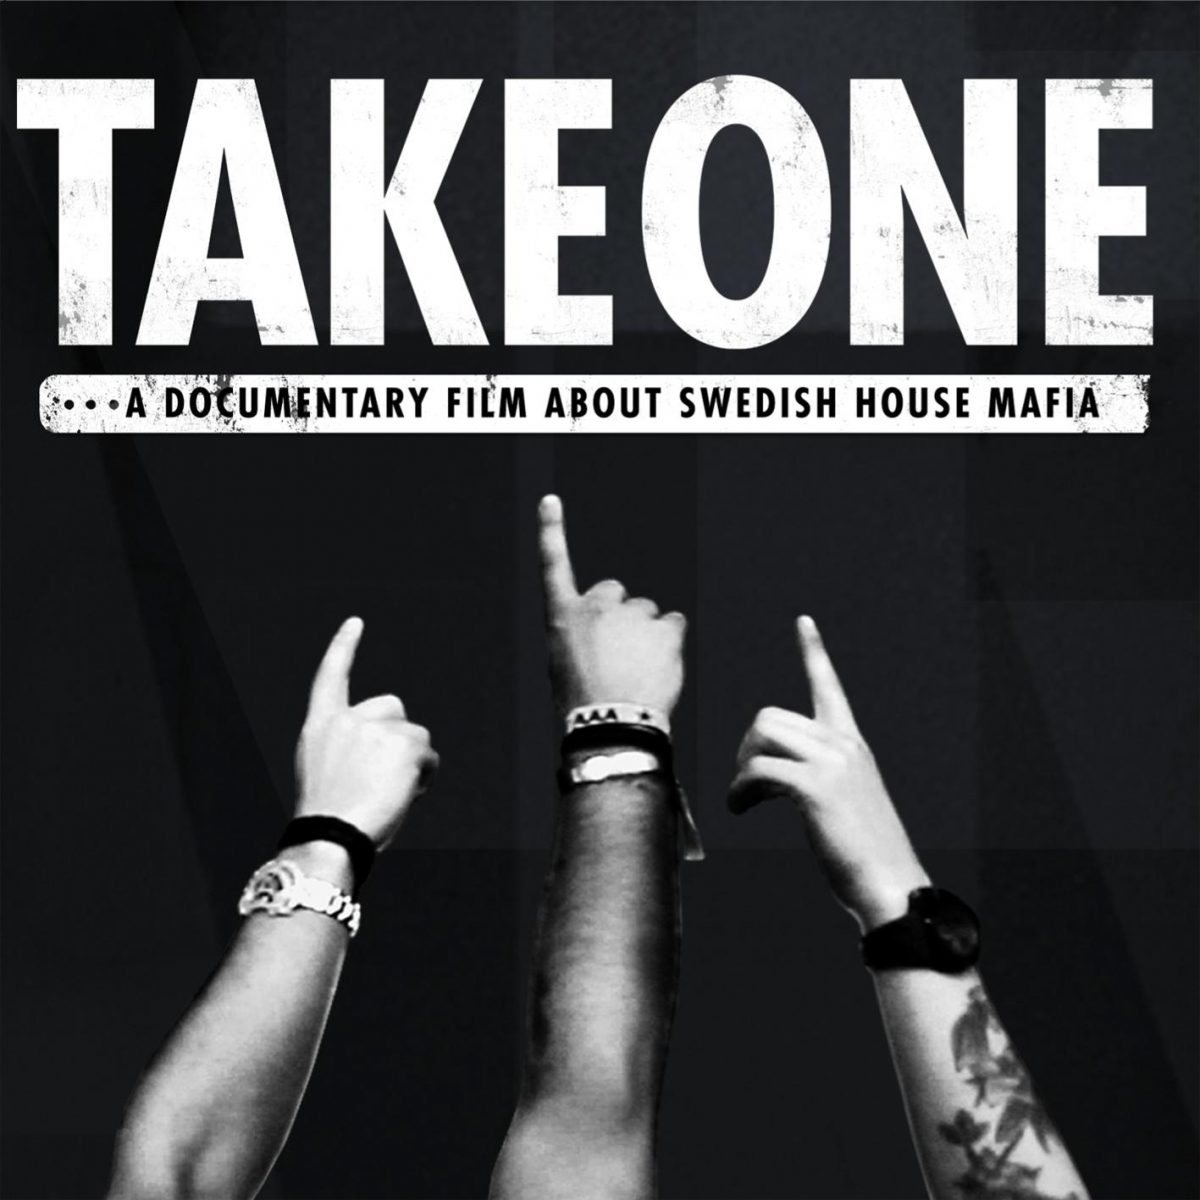 take-one-documental-swedish-house-mafia Películas y documentales sobre música electrónica [Parte 1]